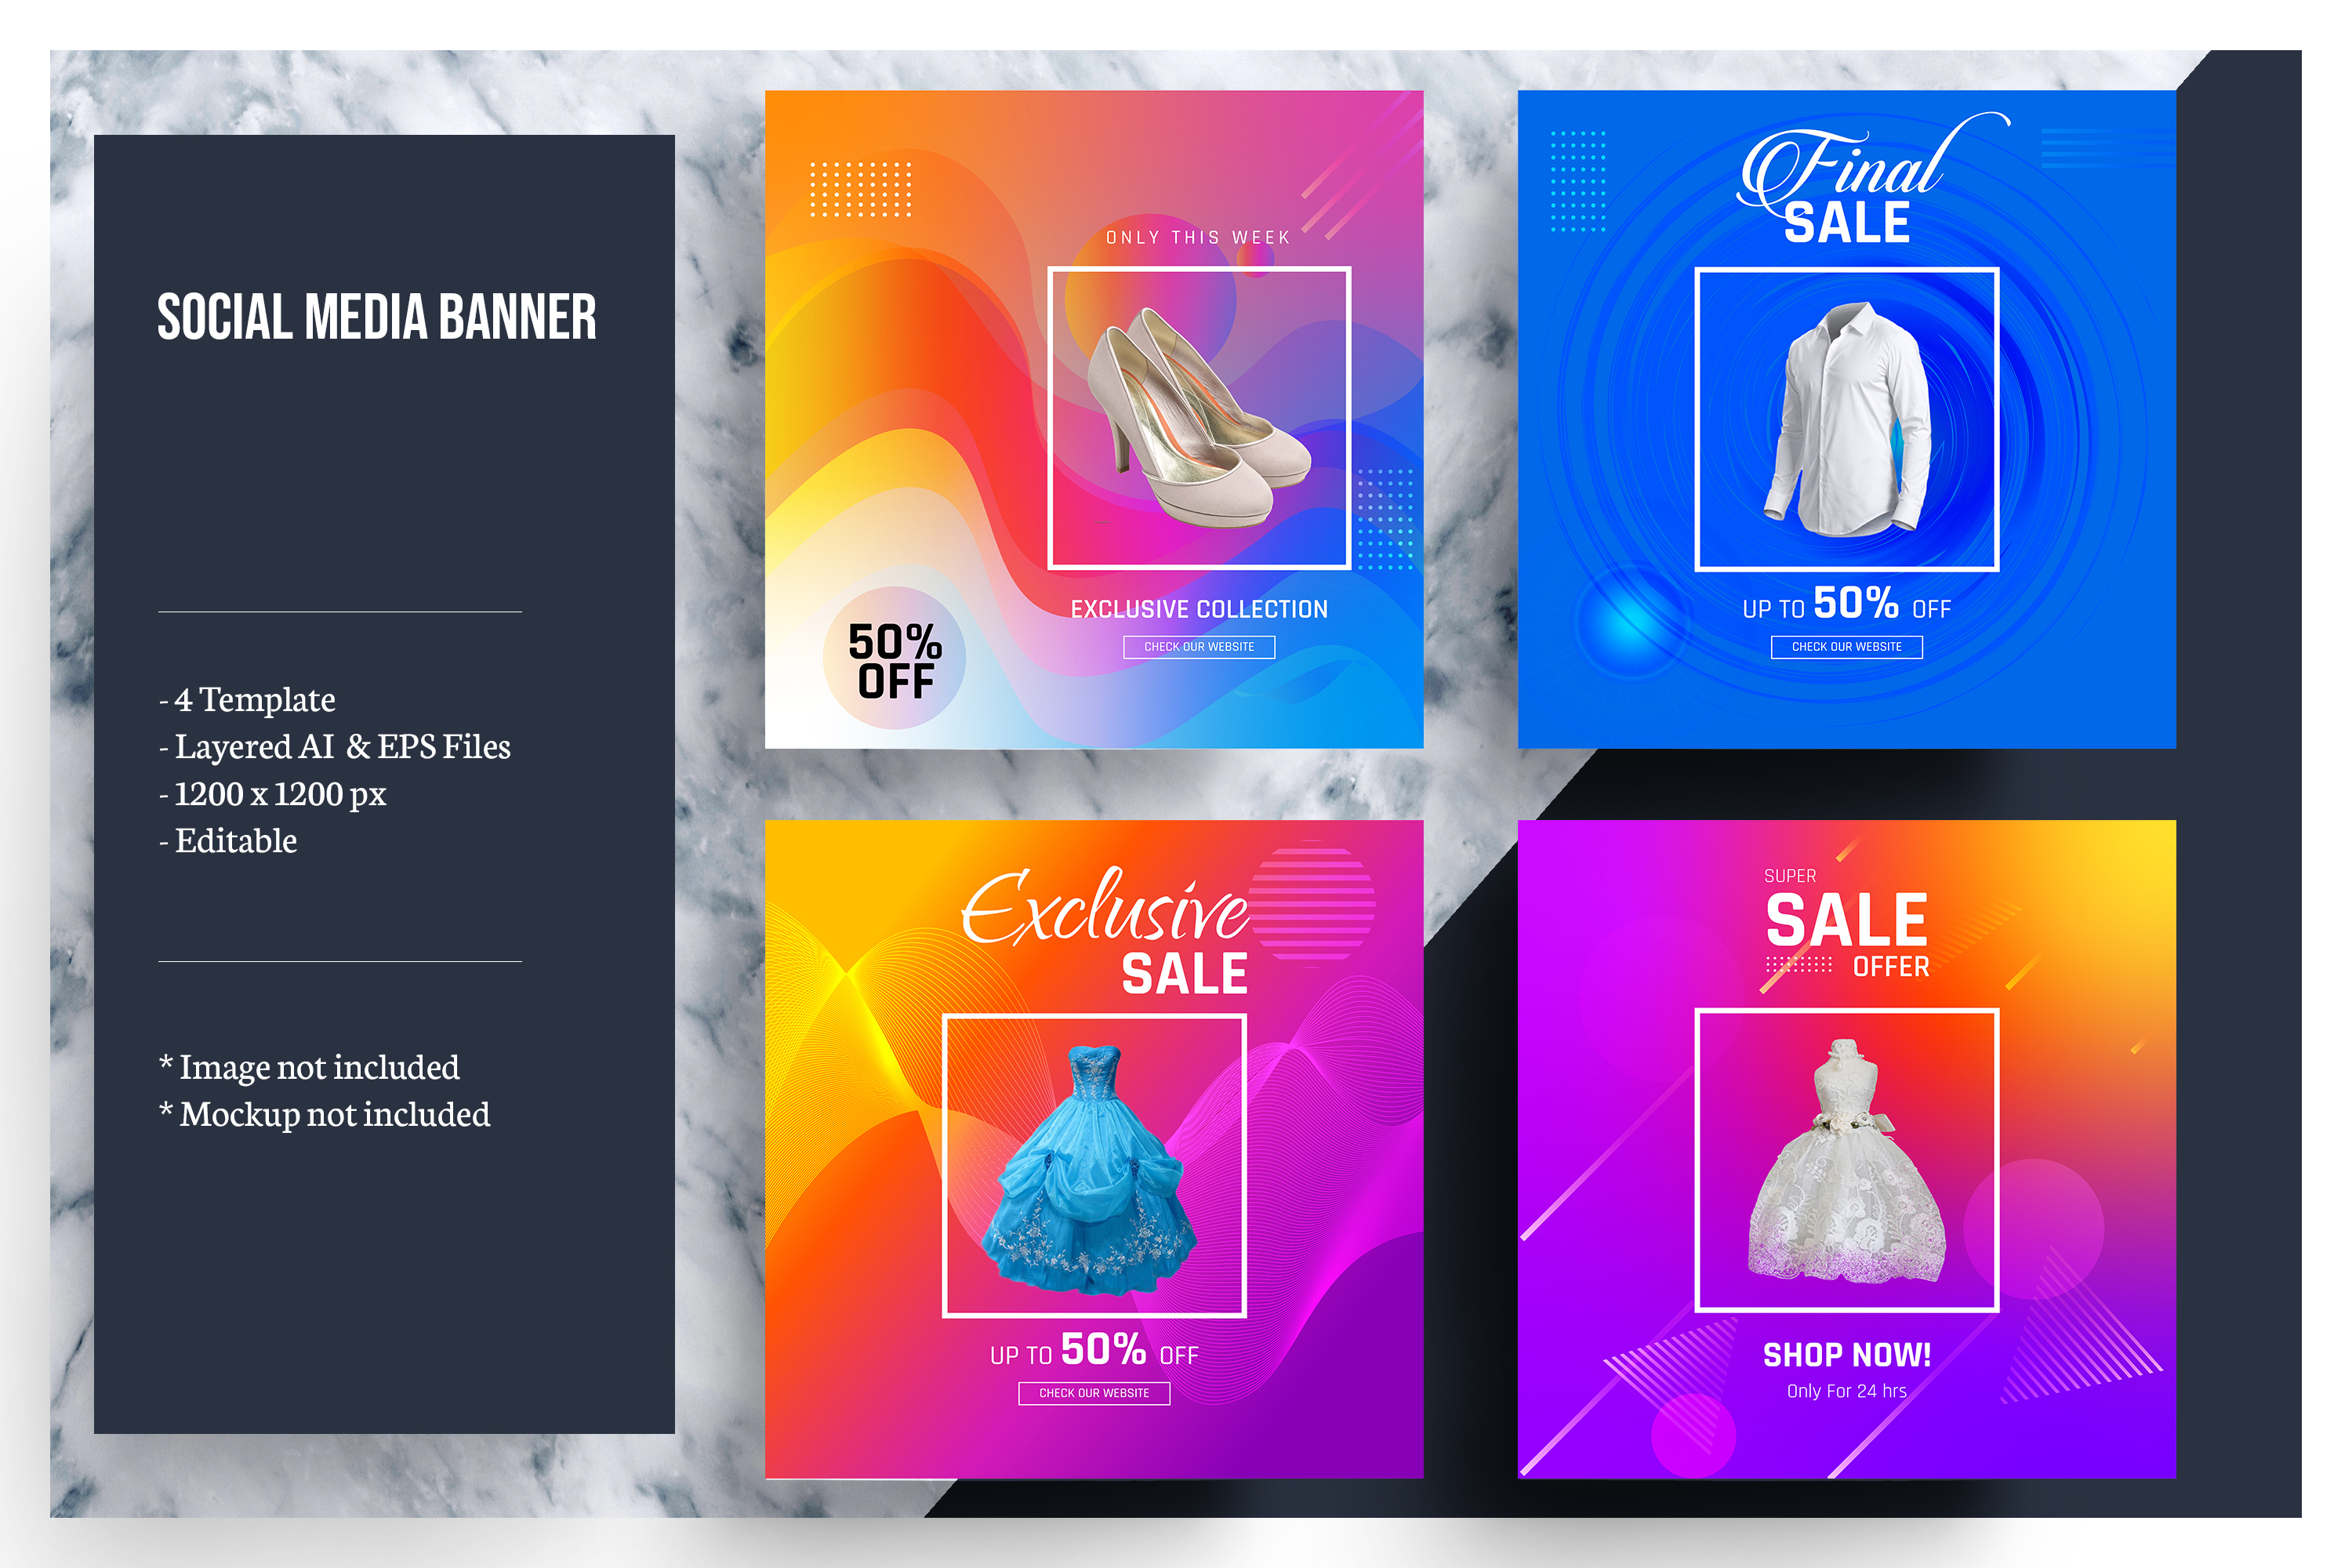 Colorful Social Media Banner Template Regarding Product Banner Template